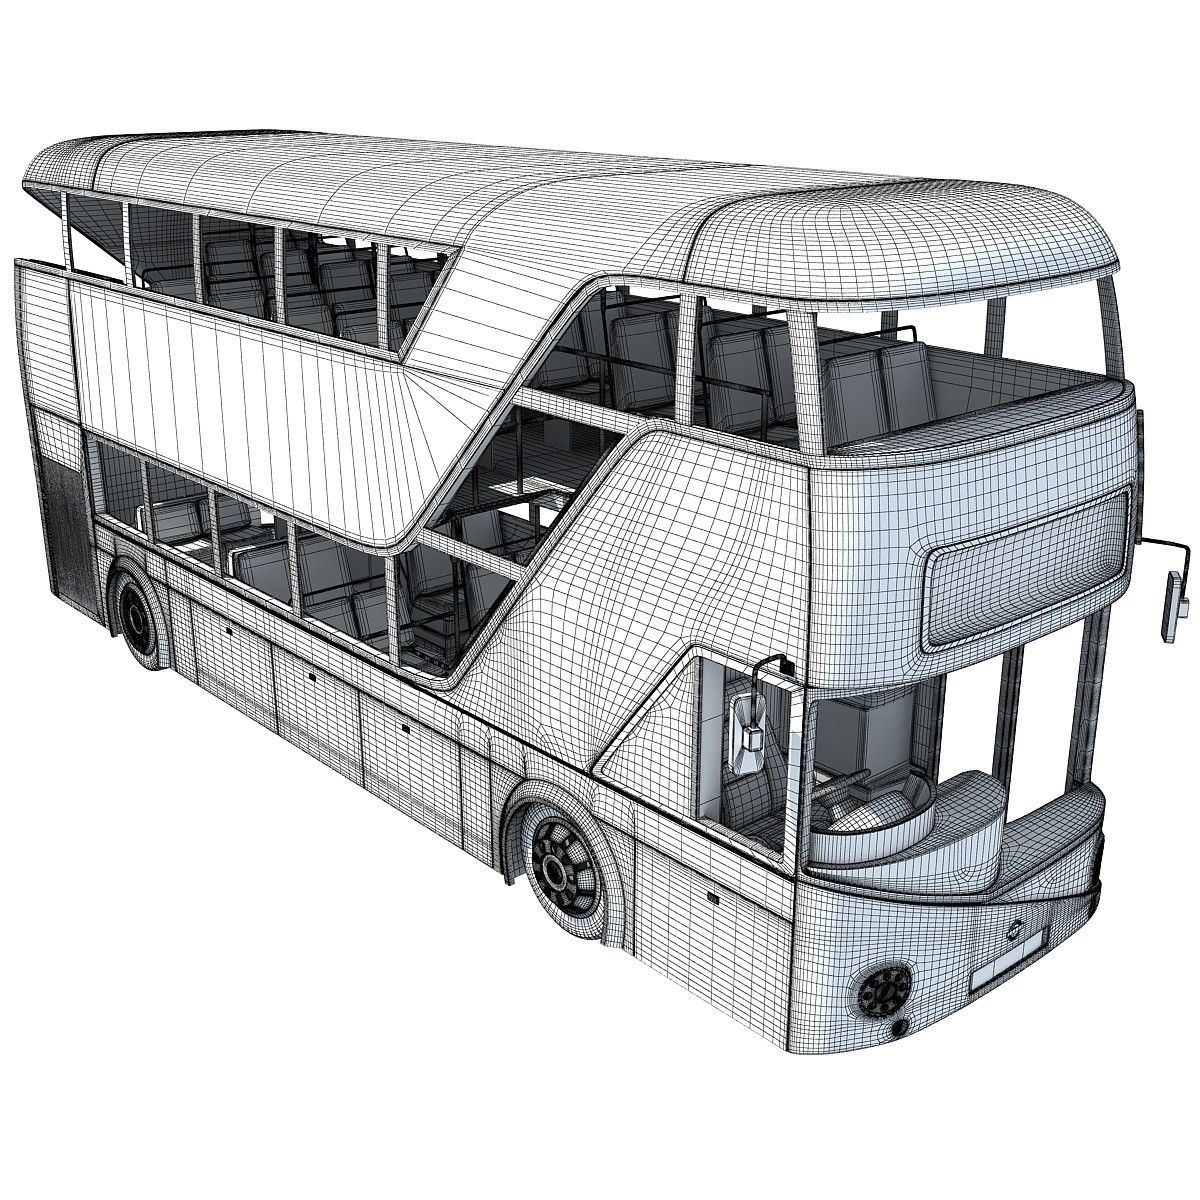 London Double Decker Bus Wireframe Meios De Transporte E Transporte